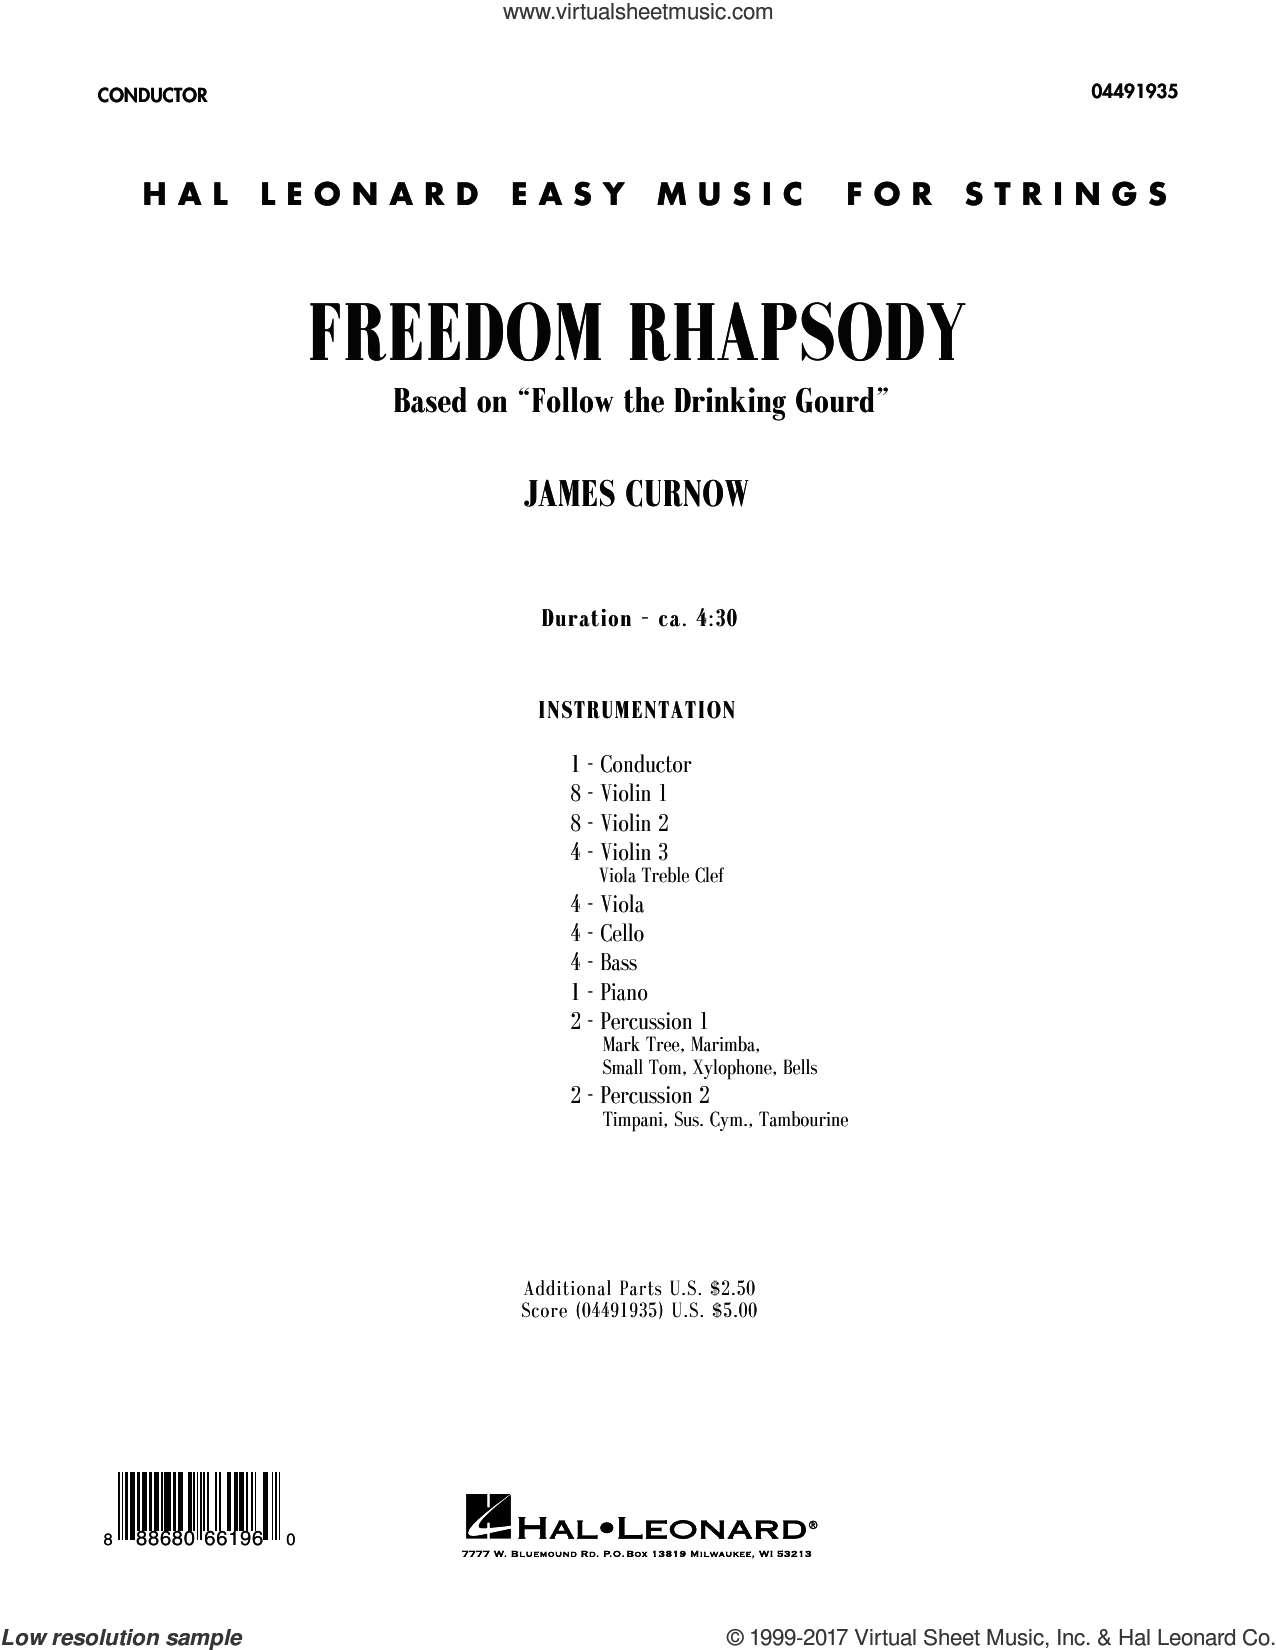 Freedom Rhapsody (based on 'Follow the Drinking Gourd') (COMPLETE) sheet music for orchestra by James Curnow, intermediate